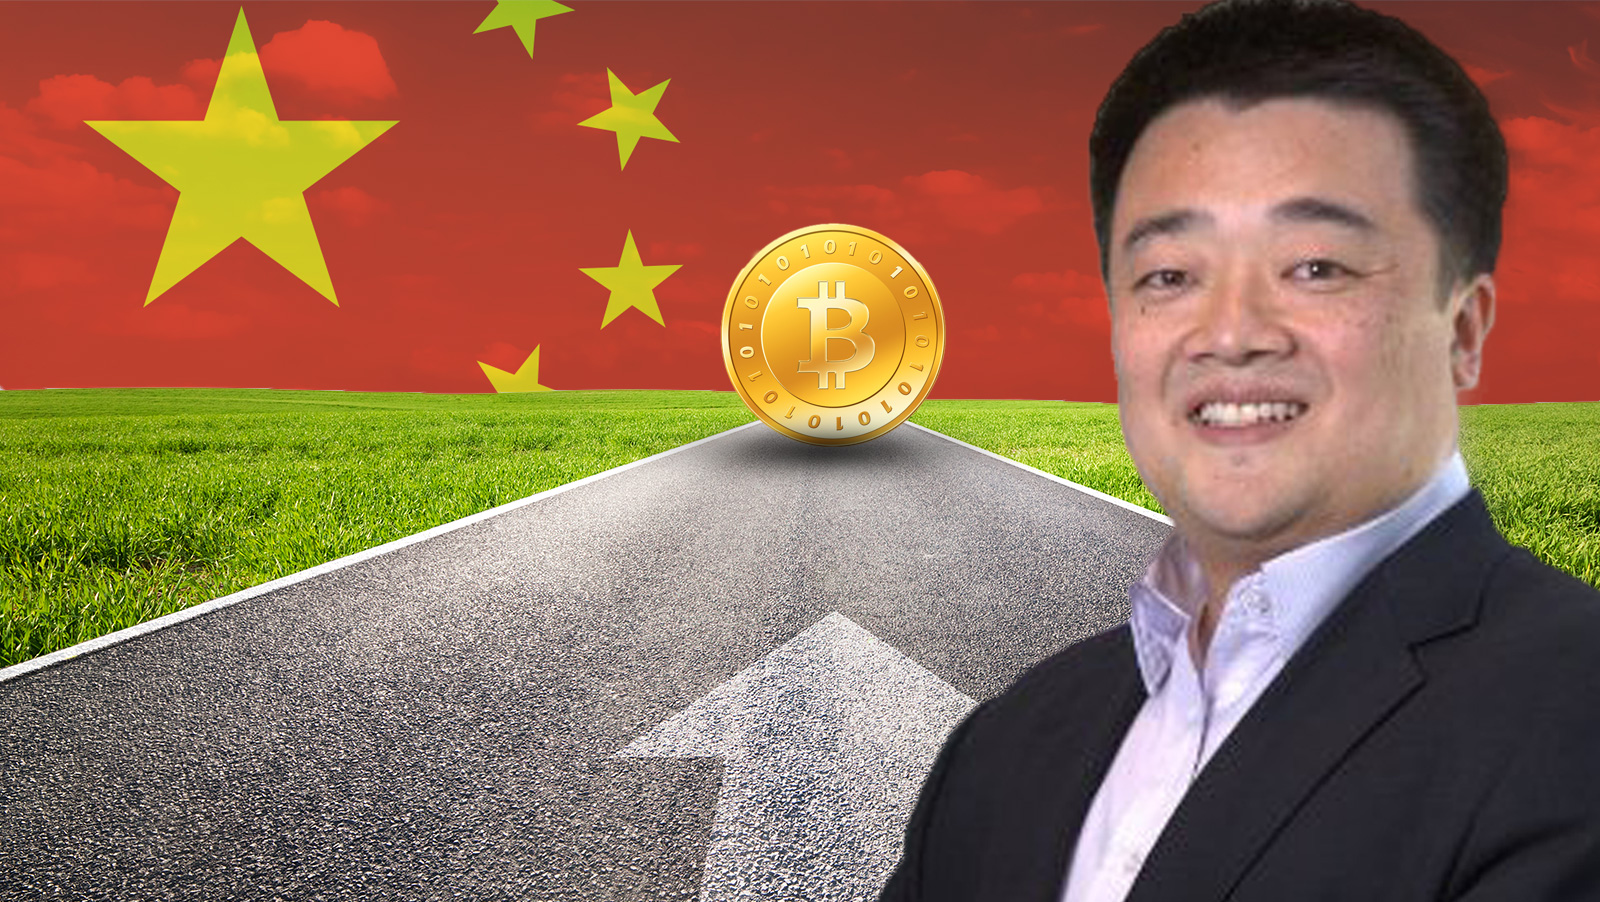 Bitcoin braces for possible long wait to be regulated in China